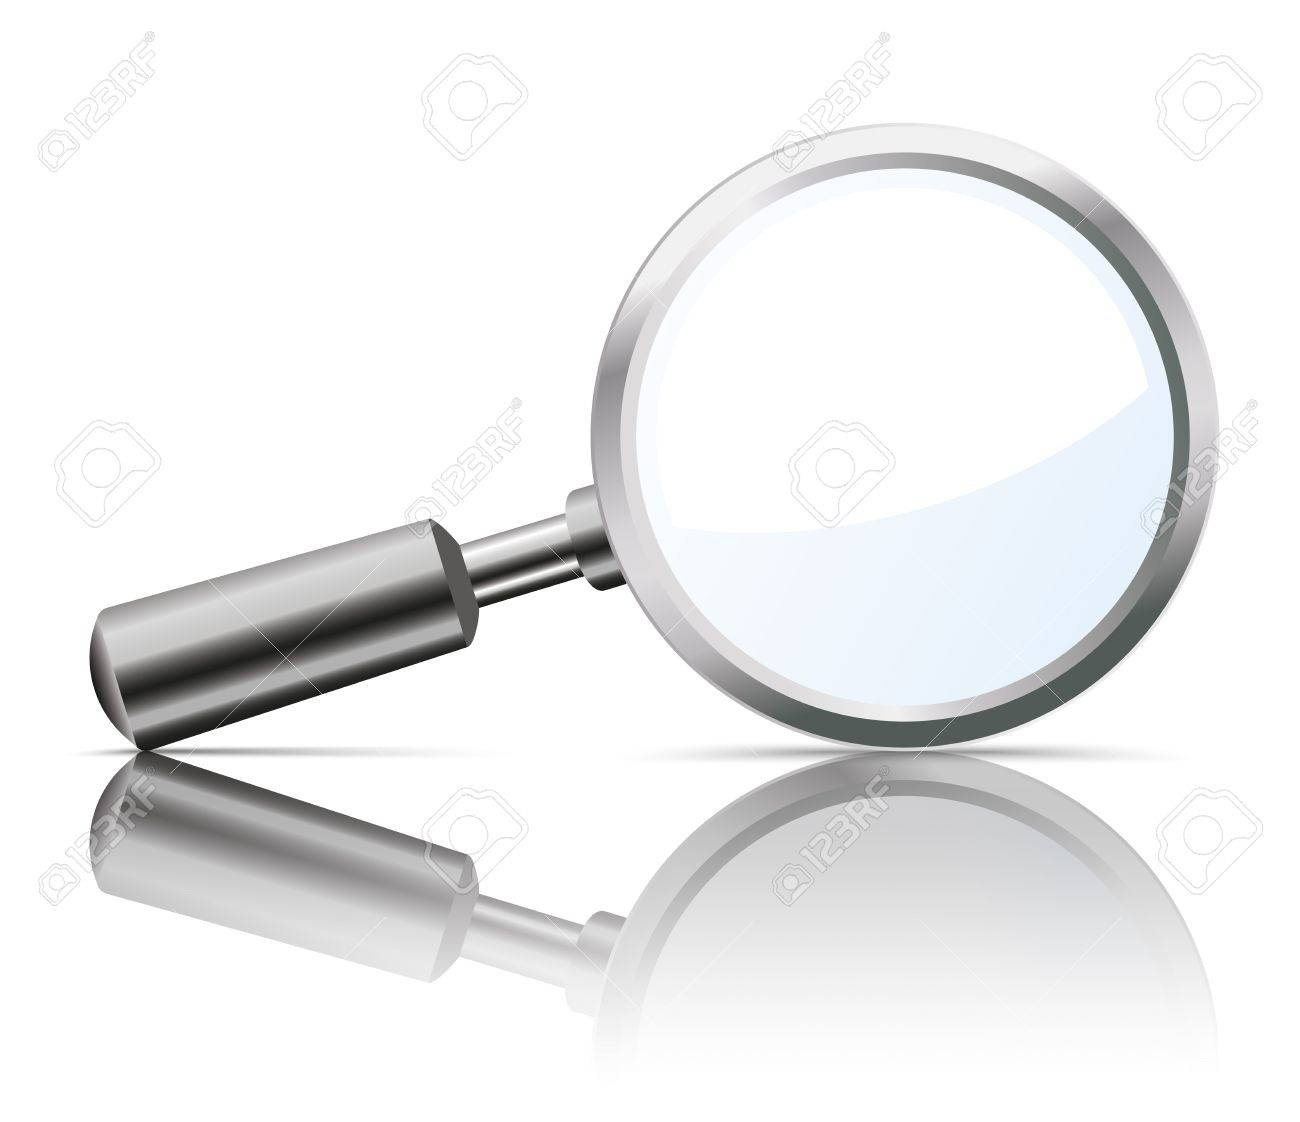 Loupe with reflection on the white background. - 56044742